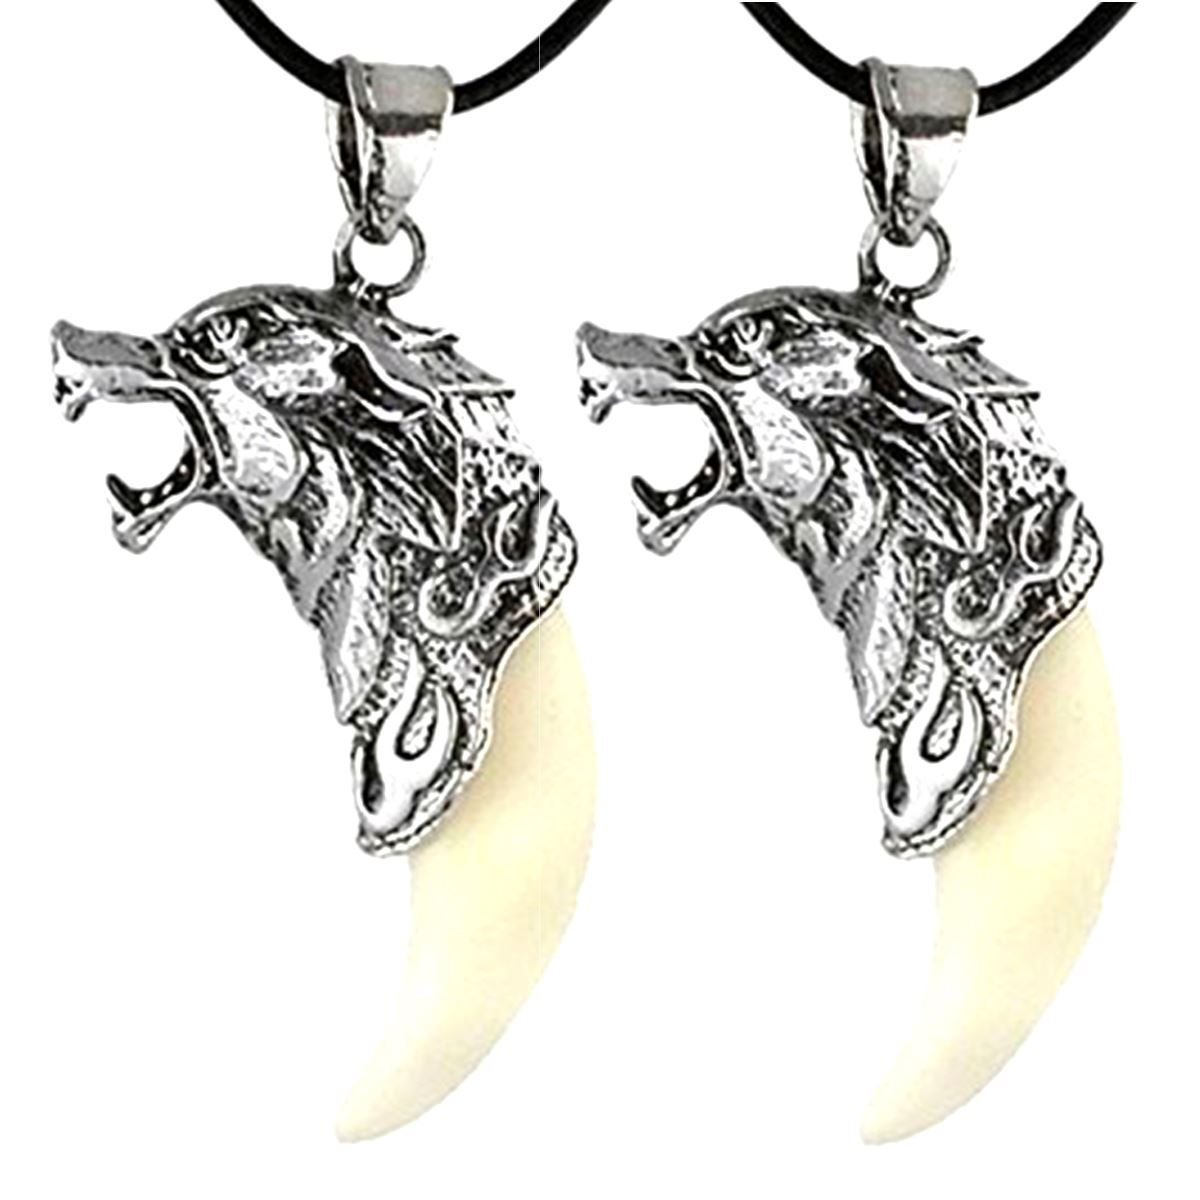 Two Wolf Head & Synthetic Fang Tooth Necklaces -  Pendant 2 Pack -  Unisex - Howling Spirit - Silver Titanium Steel Quality - Leather Necklace Band (2 pieces)